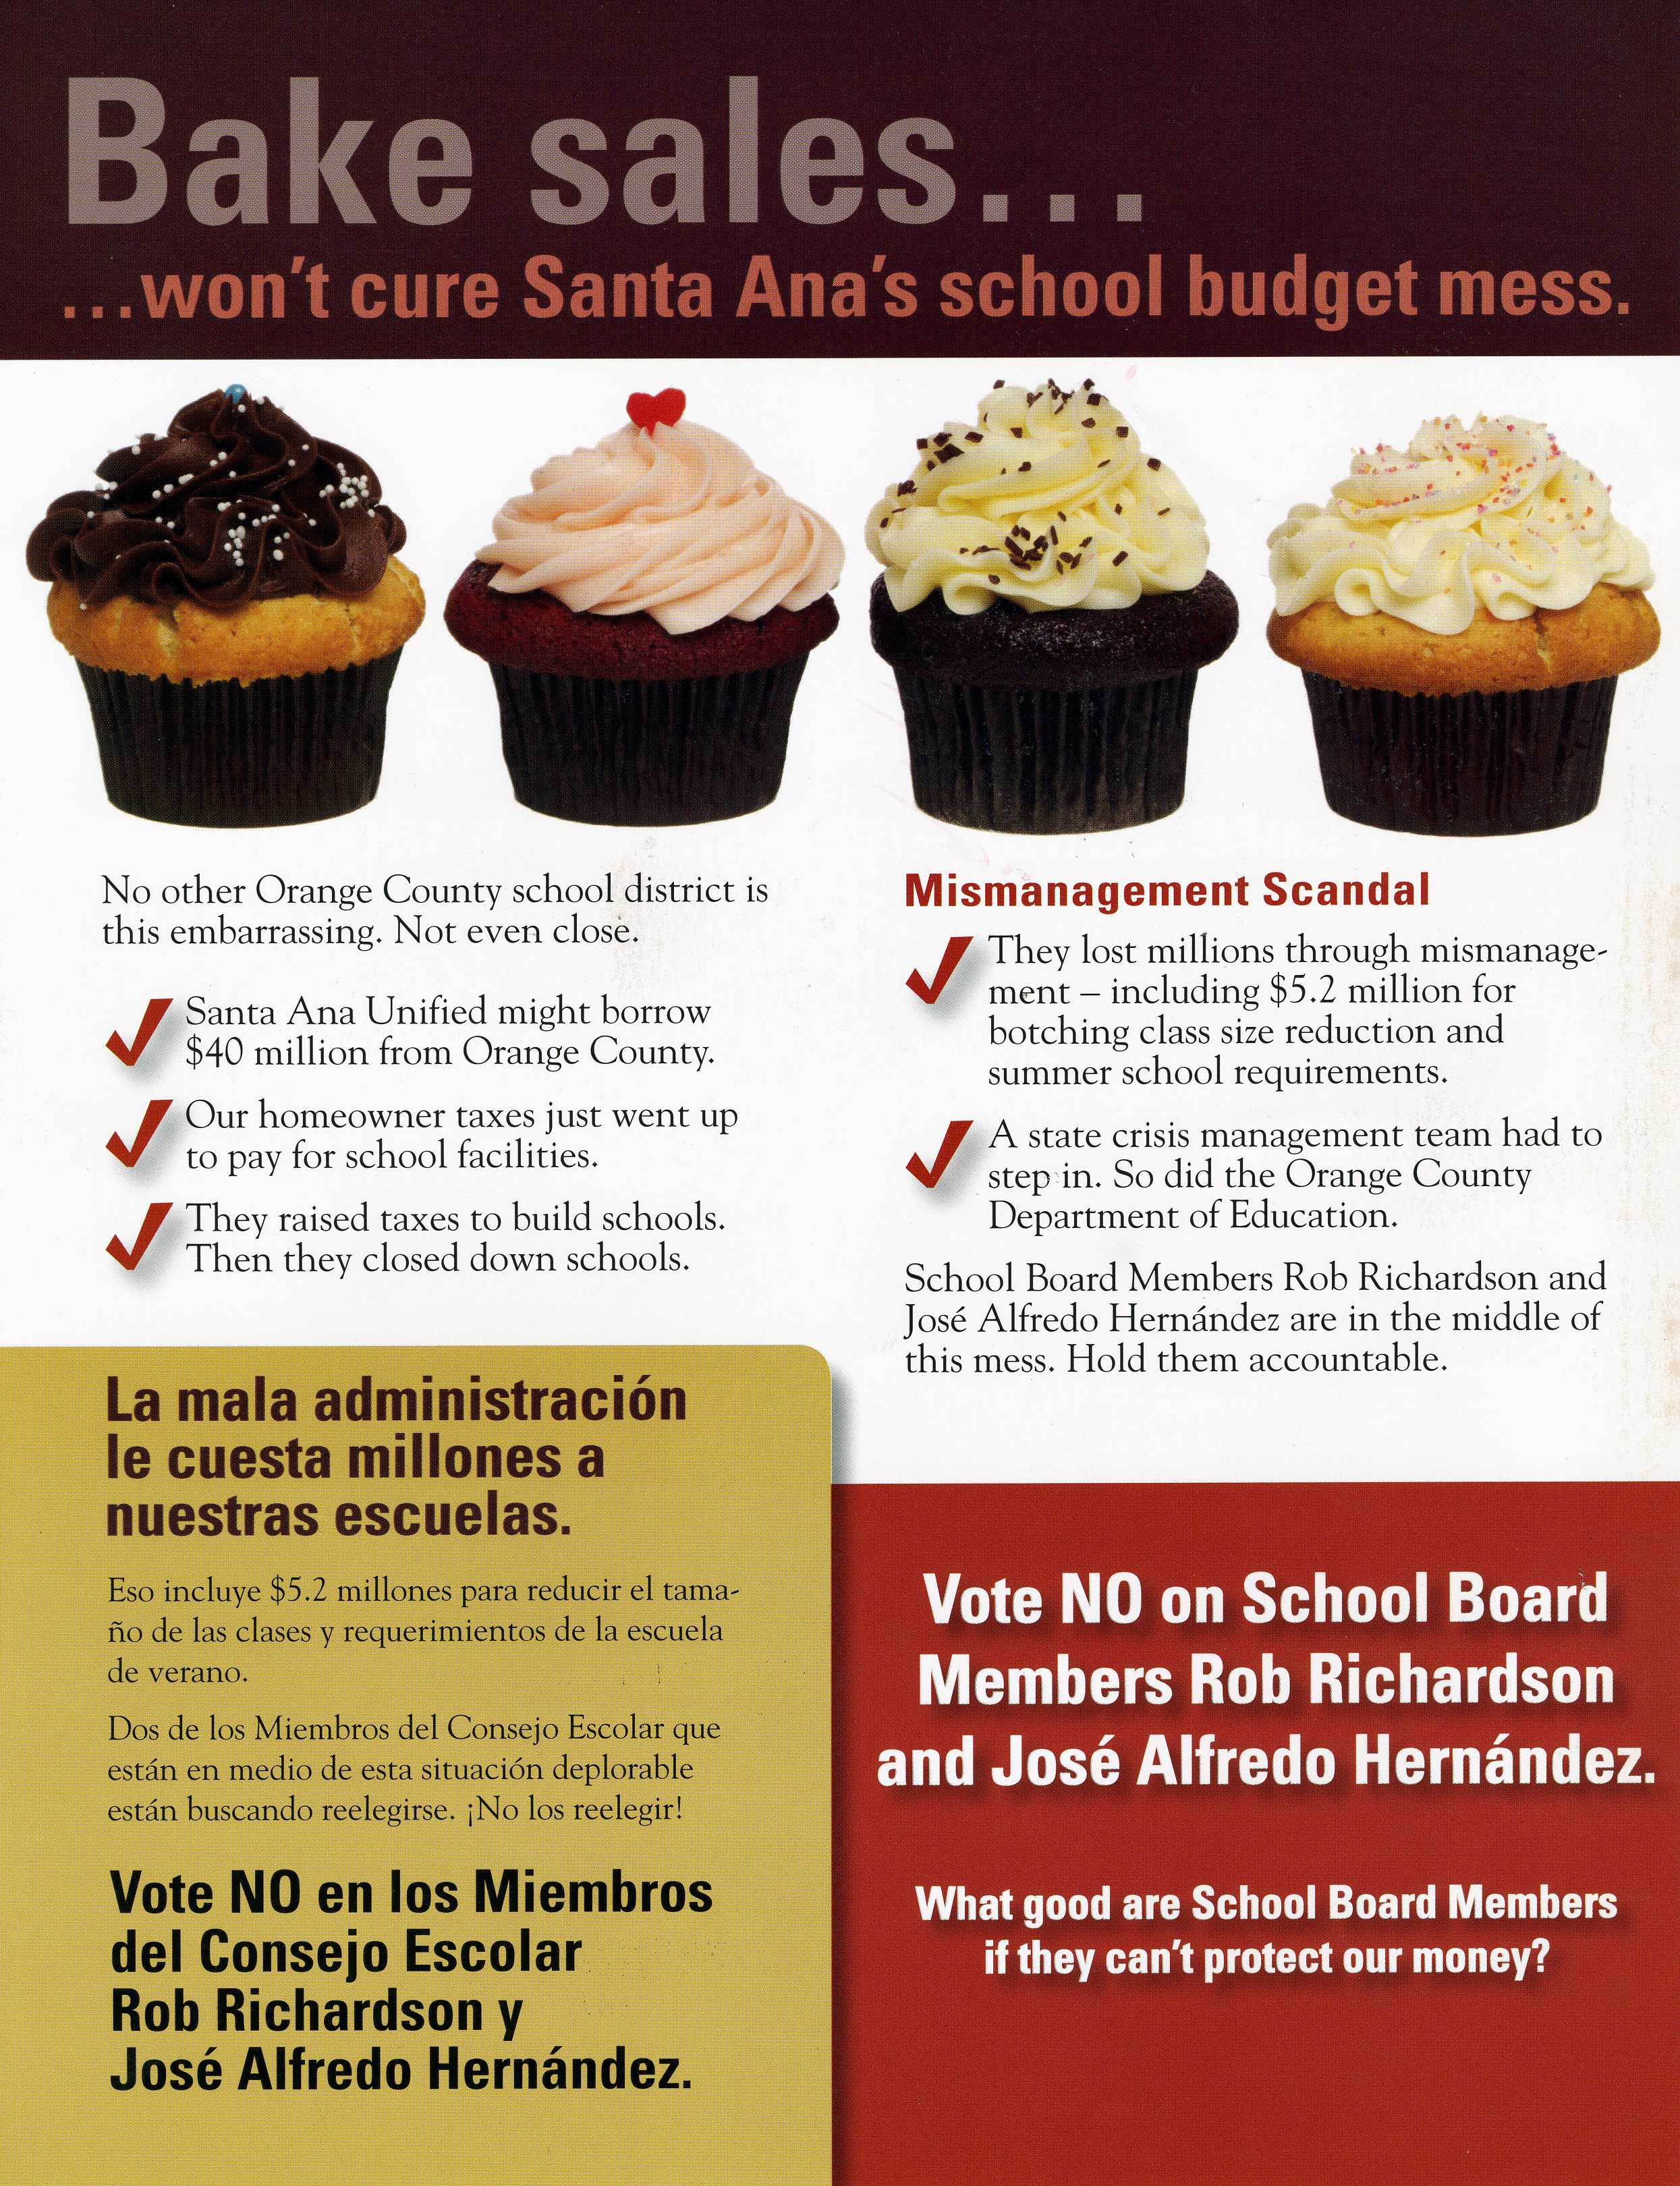 SAUSD School Board candidates Rob Richardson and Jose Hernandez took another direct hit today as Planned Parenthood unleashed another negative mailer, highlighting the SAUSD School Board's poor record over the...